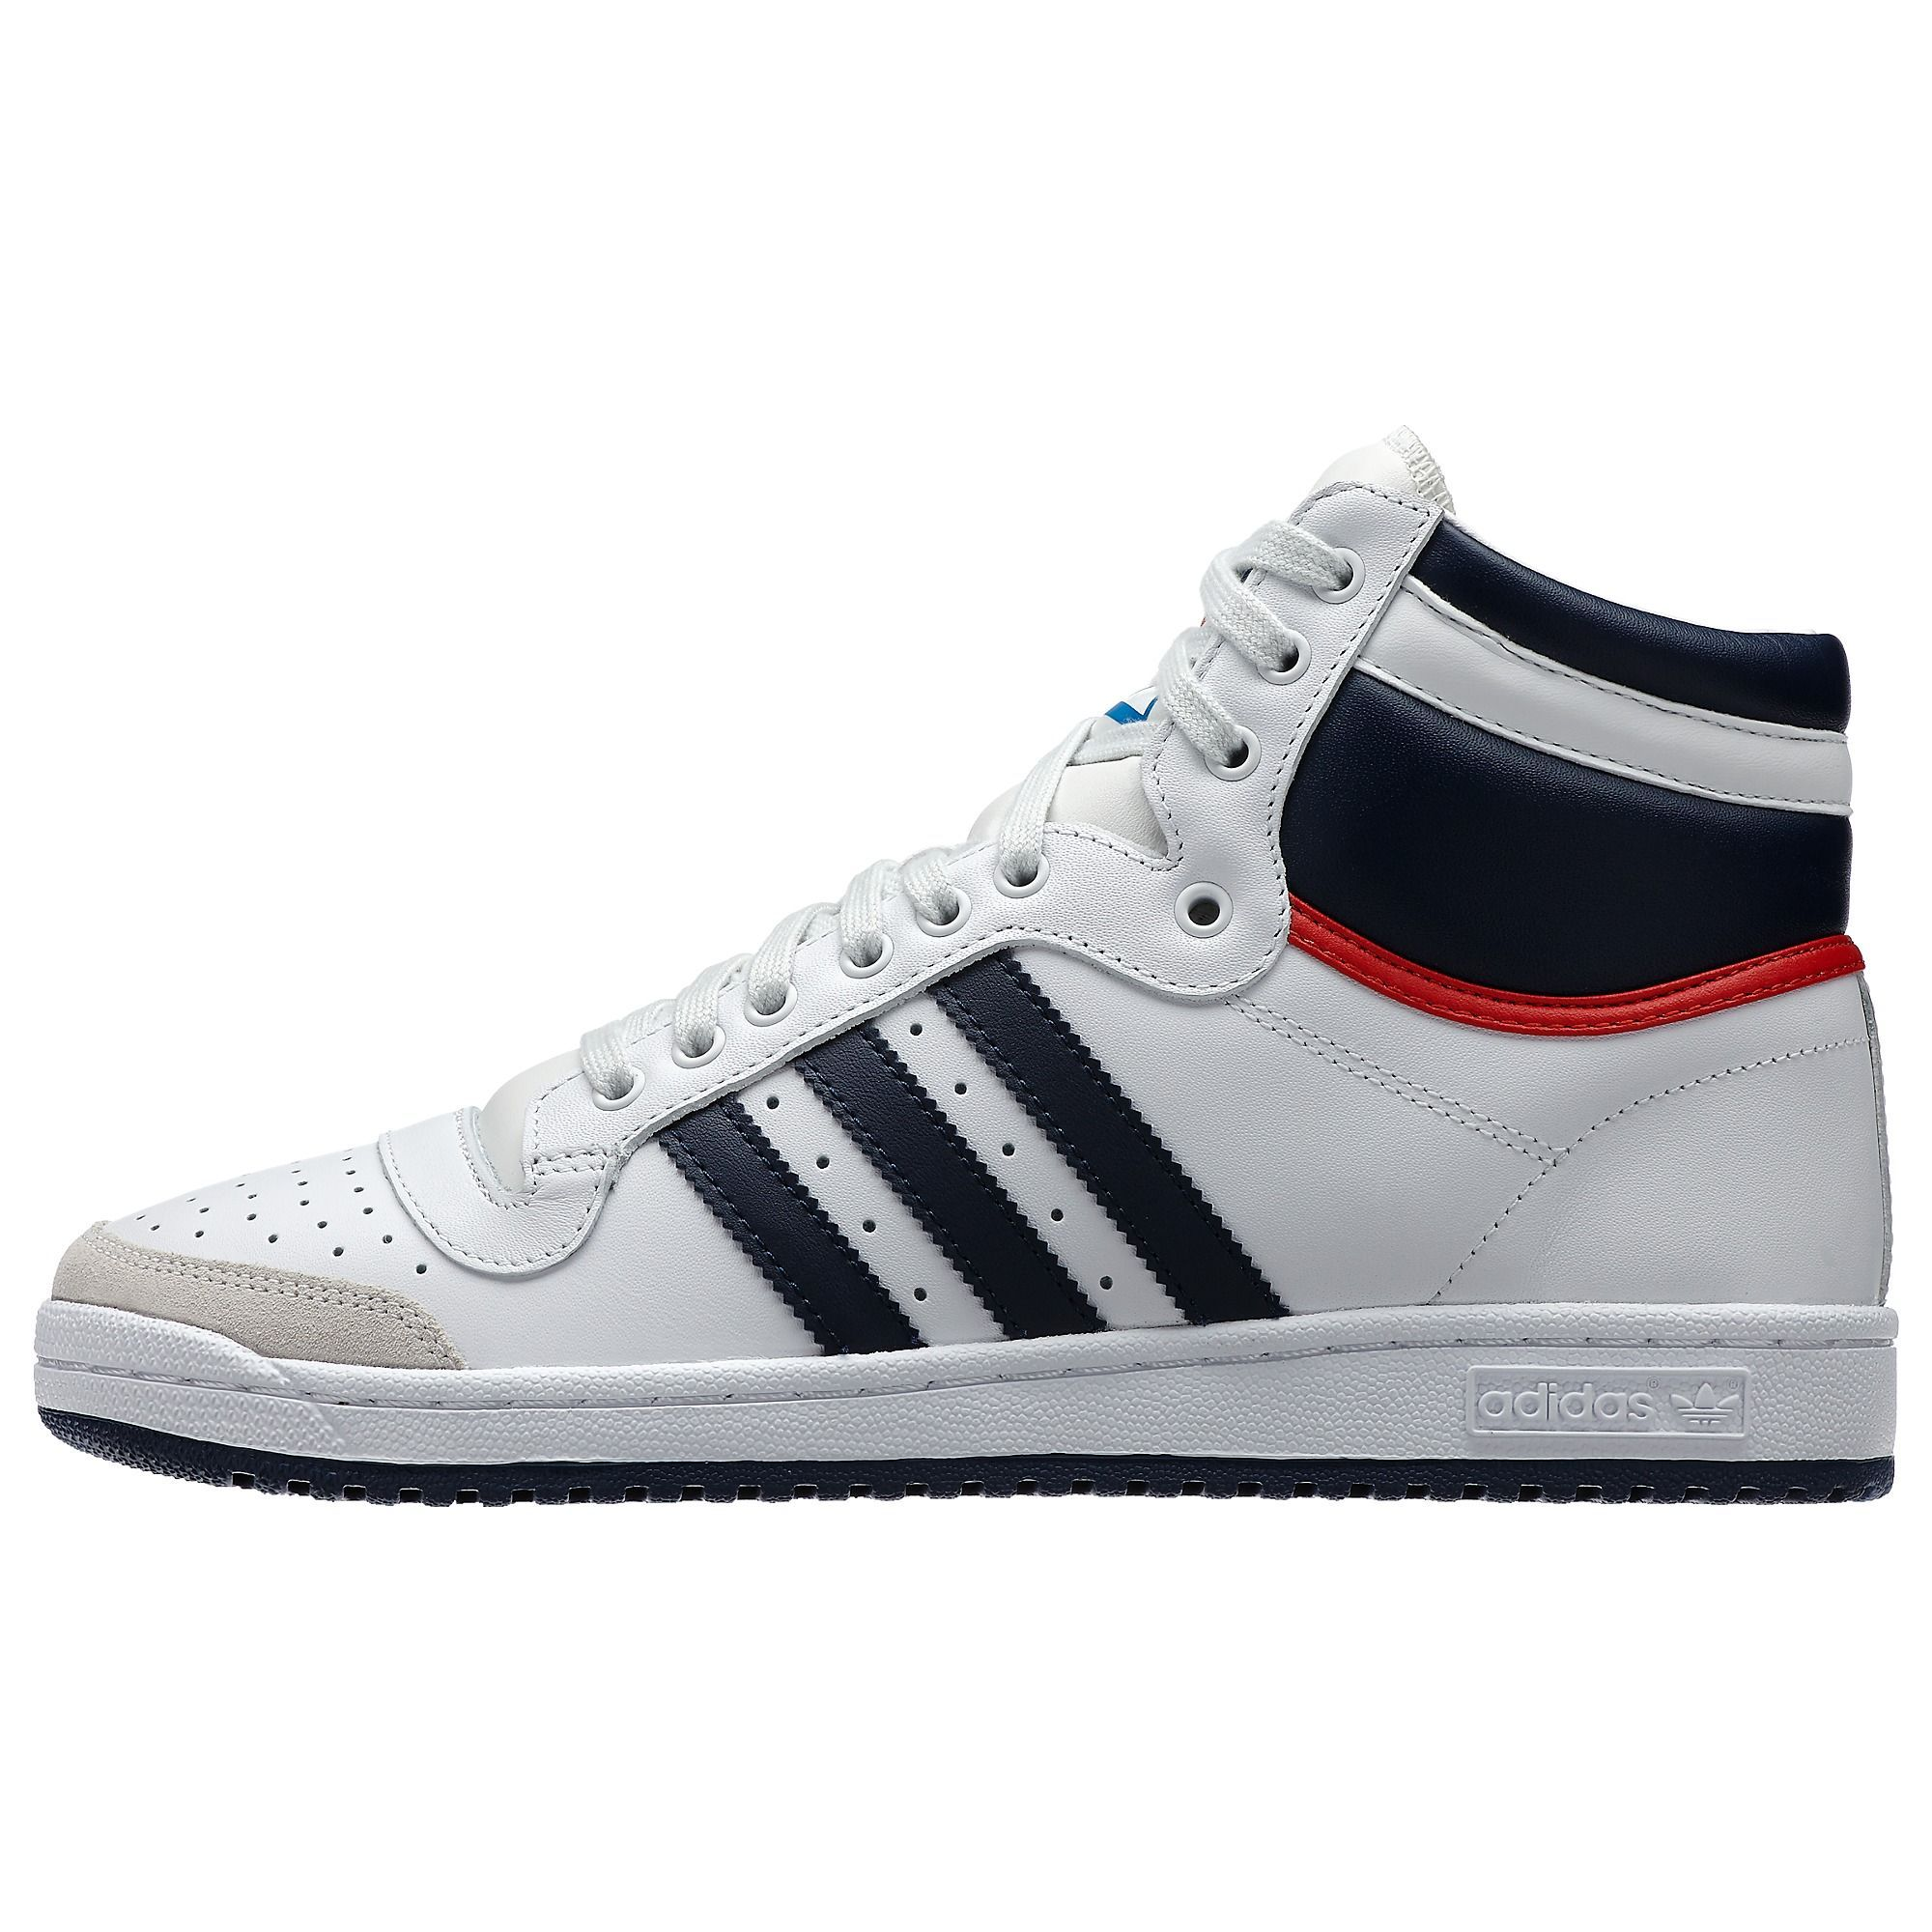 adidas Top Ten Hi Shoes ordered for matt and grant act 2